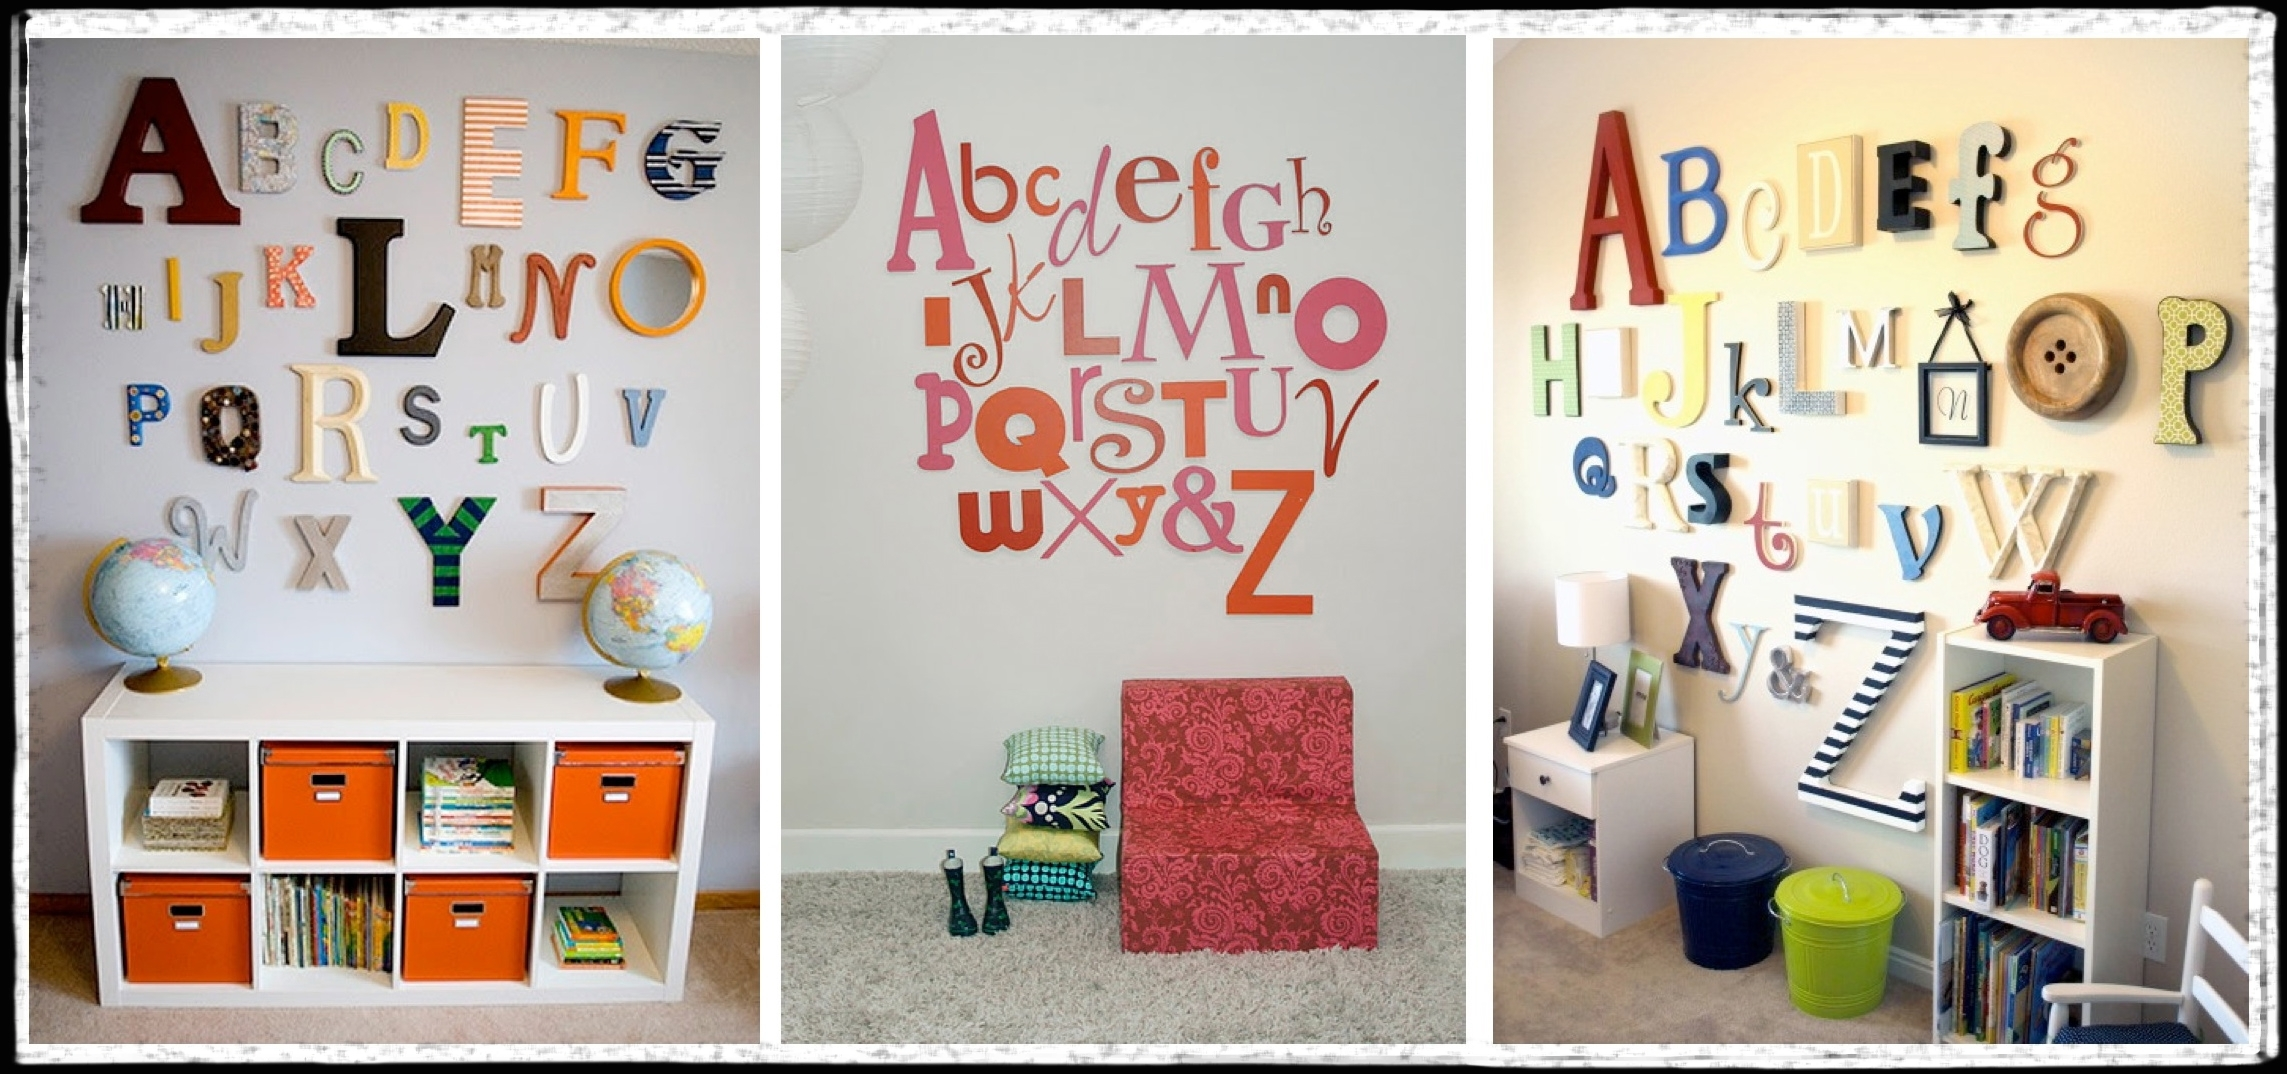 Decorative Letters For Walls | Sevenstonesinc With Regard To Most Recent Letter Wall Art (View 2 of 20)